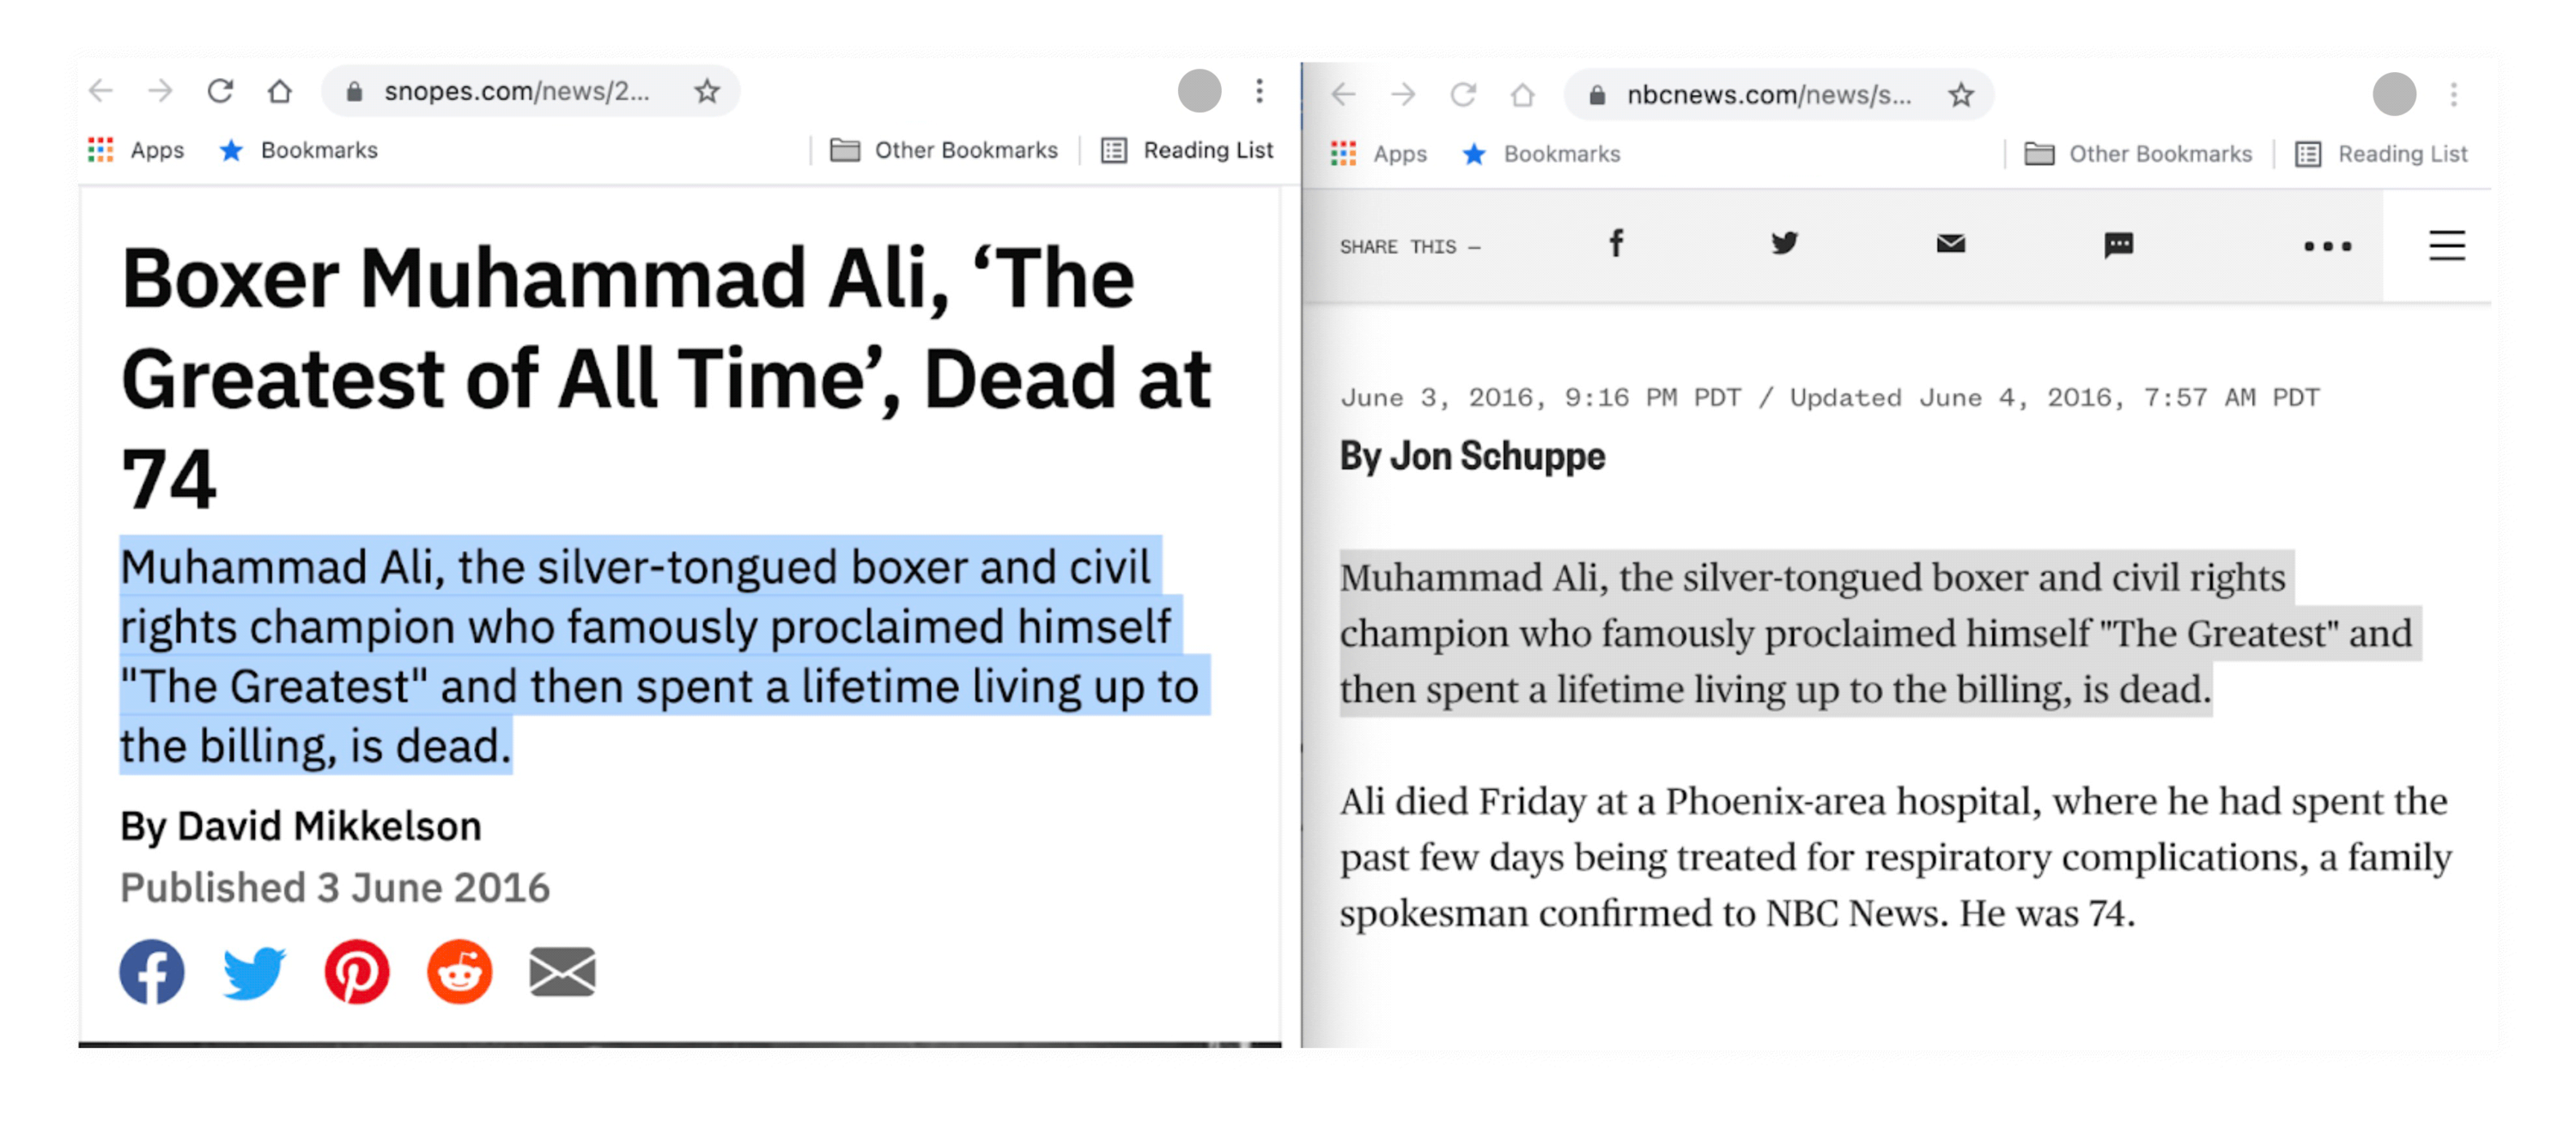 A side-by-side comparison of a Snopes story and one from NBC News